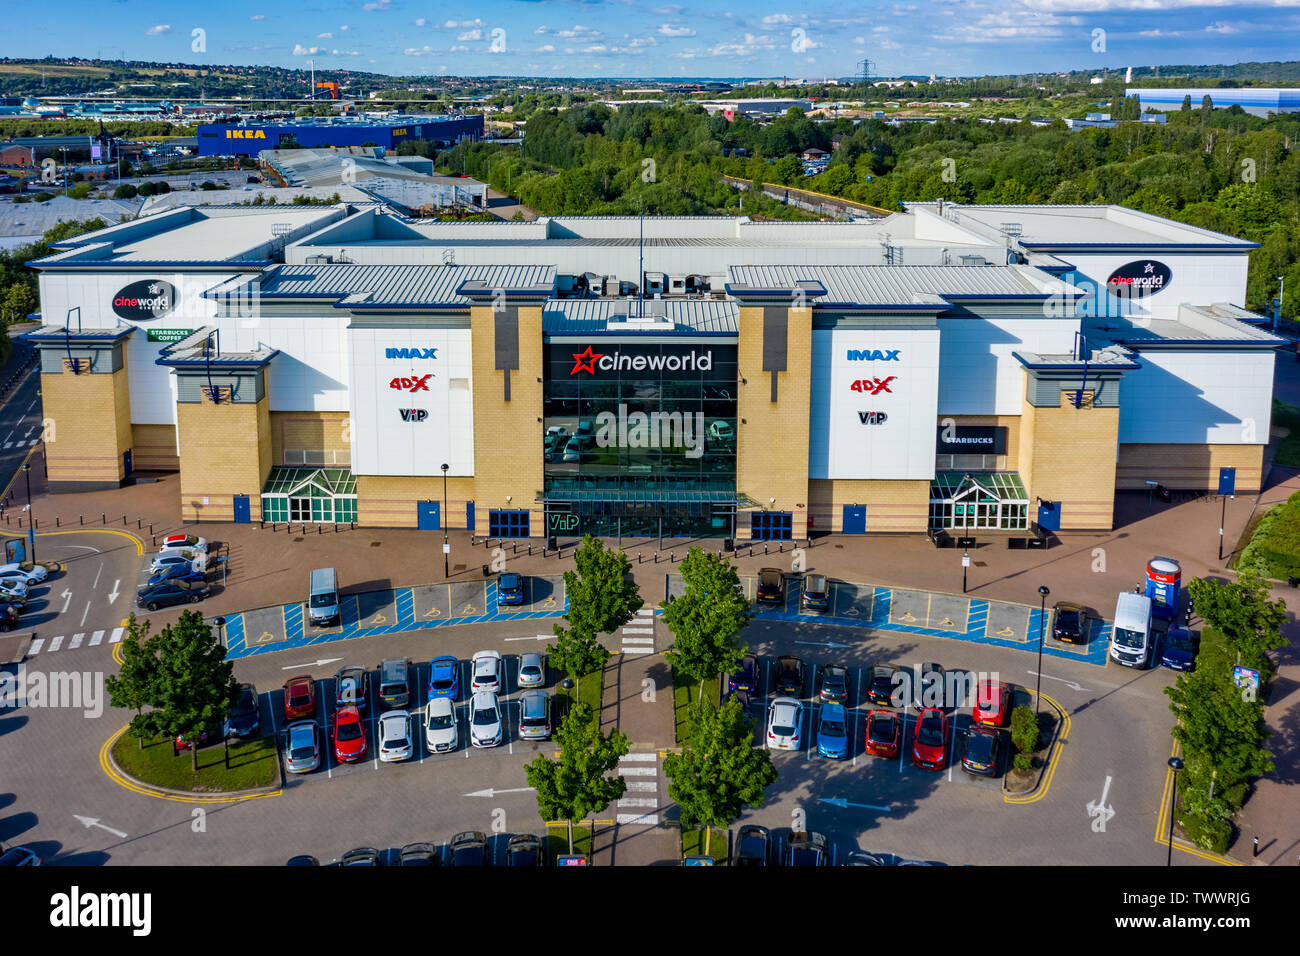 SHEFFIELD, UK - 20TH JUNE 2019: Aerial shot of the Cineworld at Centertainment in Sheffield, Yorkshire, UK - Stock Image